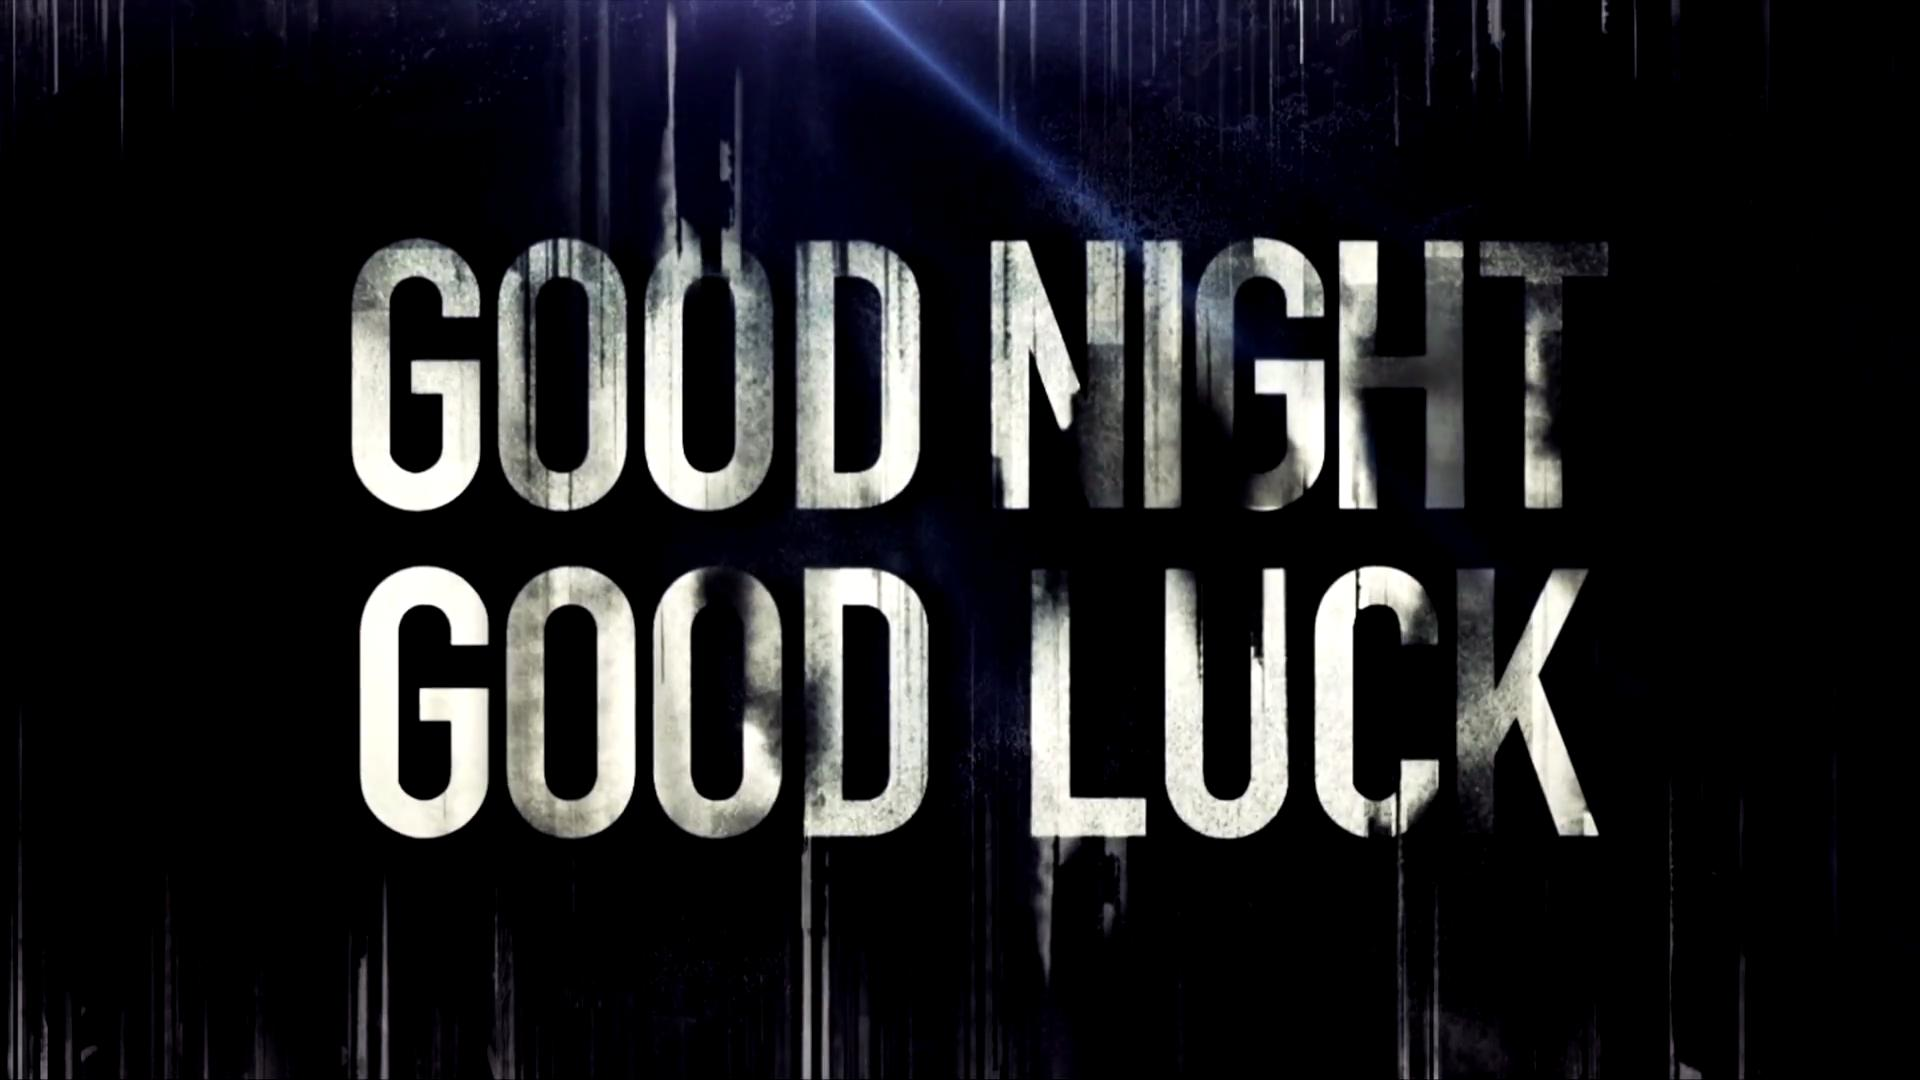 beautiful good night good luck wallpapers